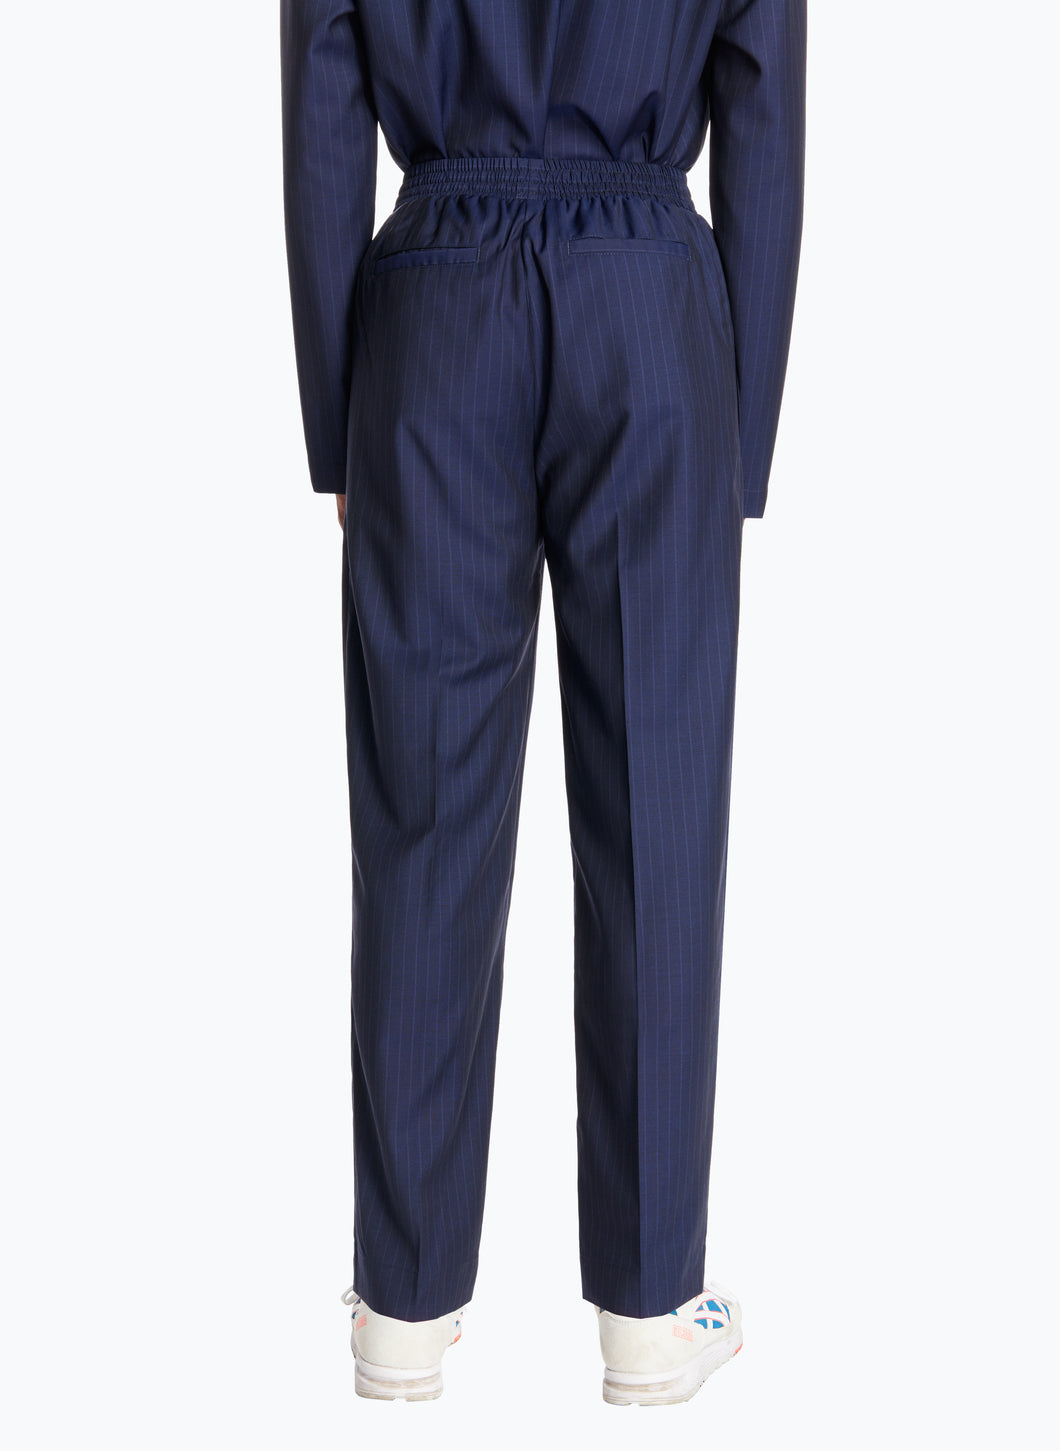 Pants with Large Elastic Waist in Navy Blue Striped Cool Wool